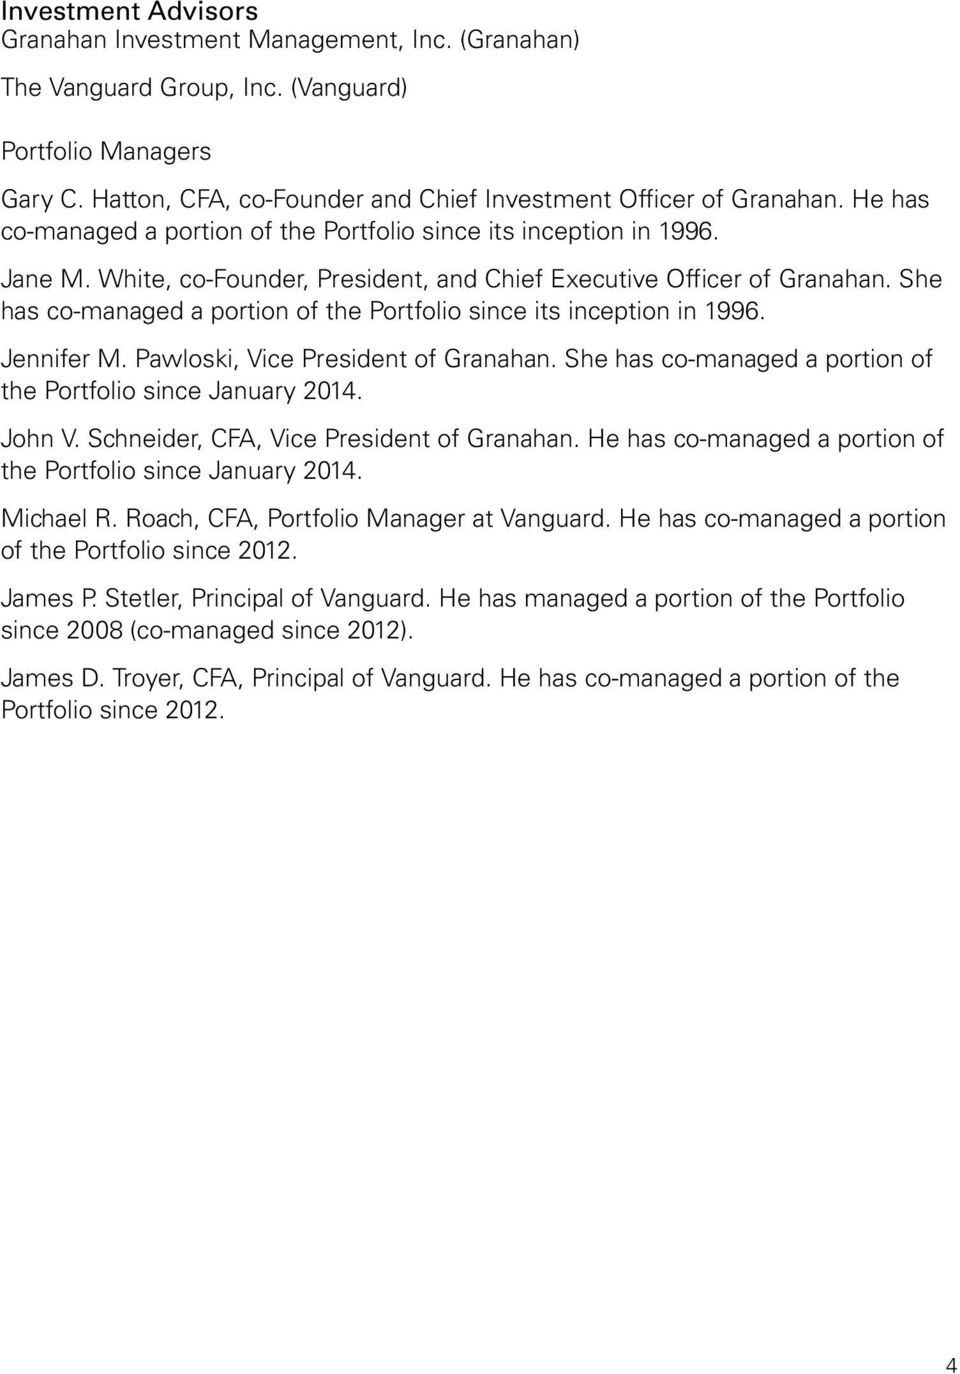 She has co-managed a portion of the Portfolio since its inception in 1996. Jennifer M. Pawloski, Vice President of Granahan. She has co-managed a portion of the Portfolio since January 2014. John V.